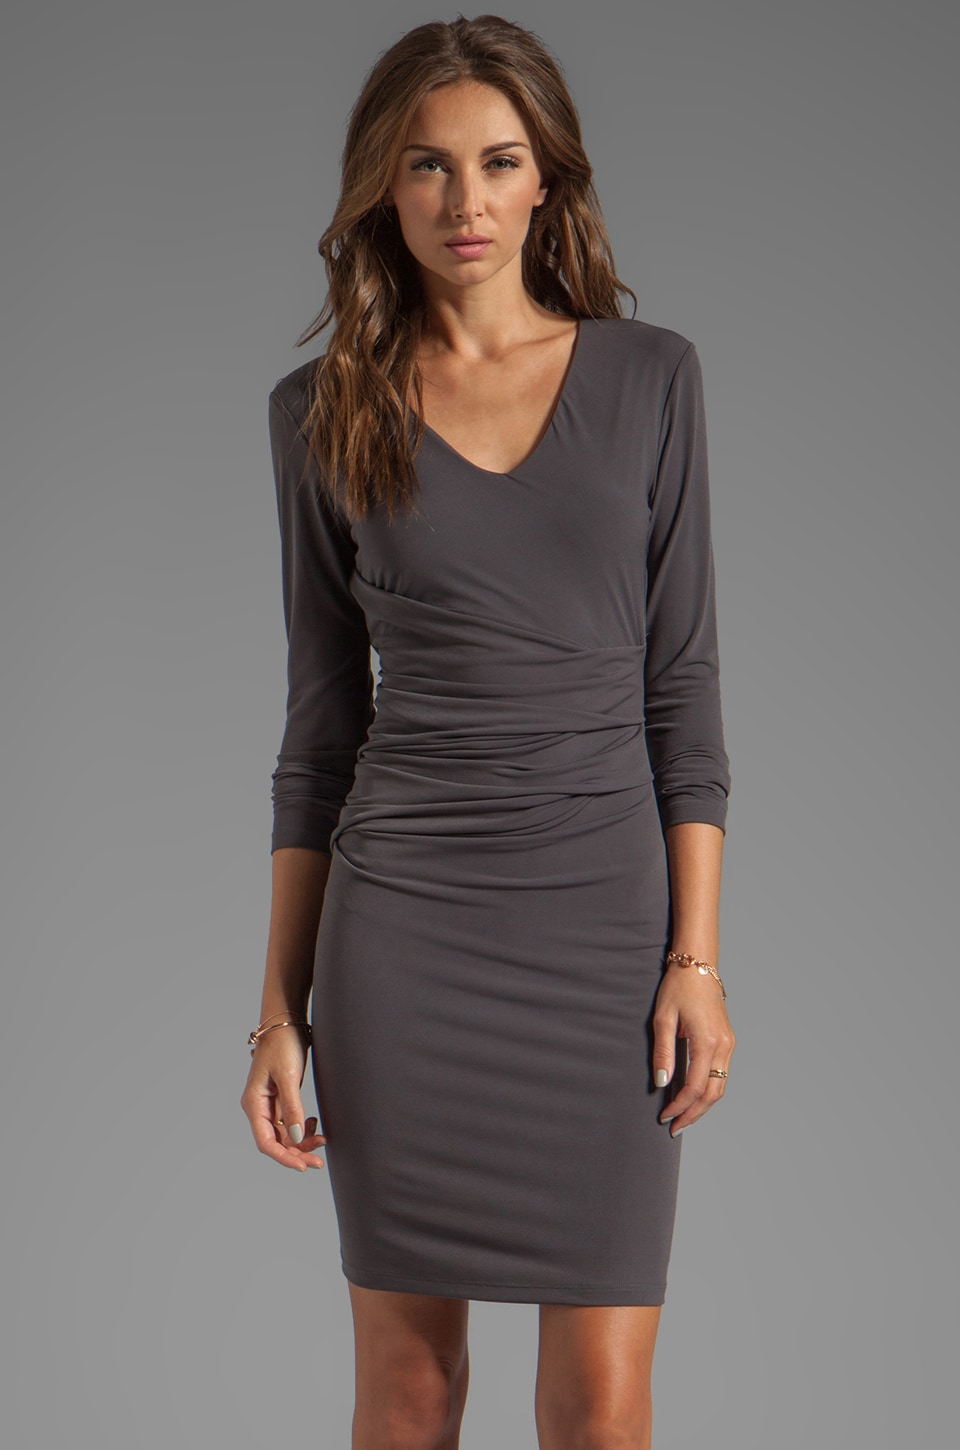 Graham & Spencer Stretch Jersey Dress in Charcoal